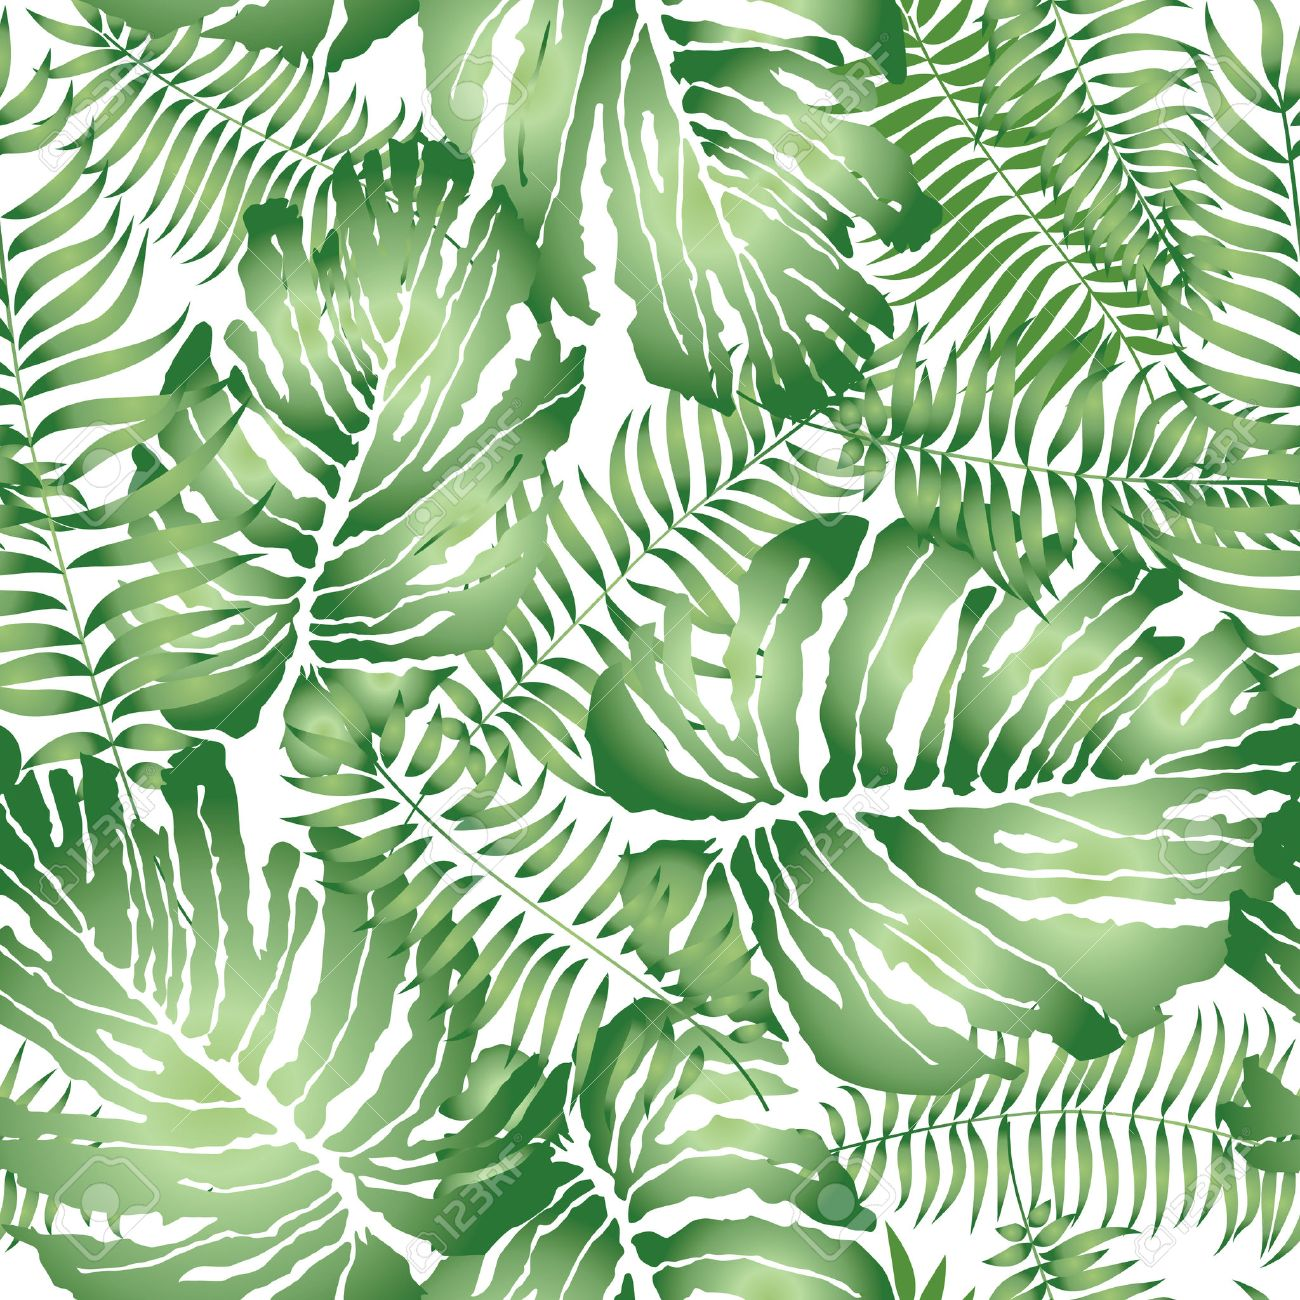 Floral Abstract Leaf Tiled Pattern Tropical Palm Leaves Seamless Background Stock Vector